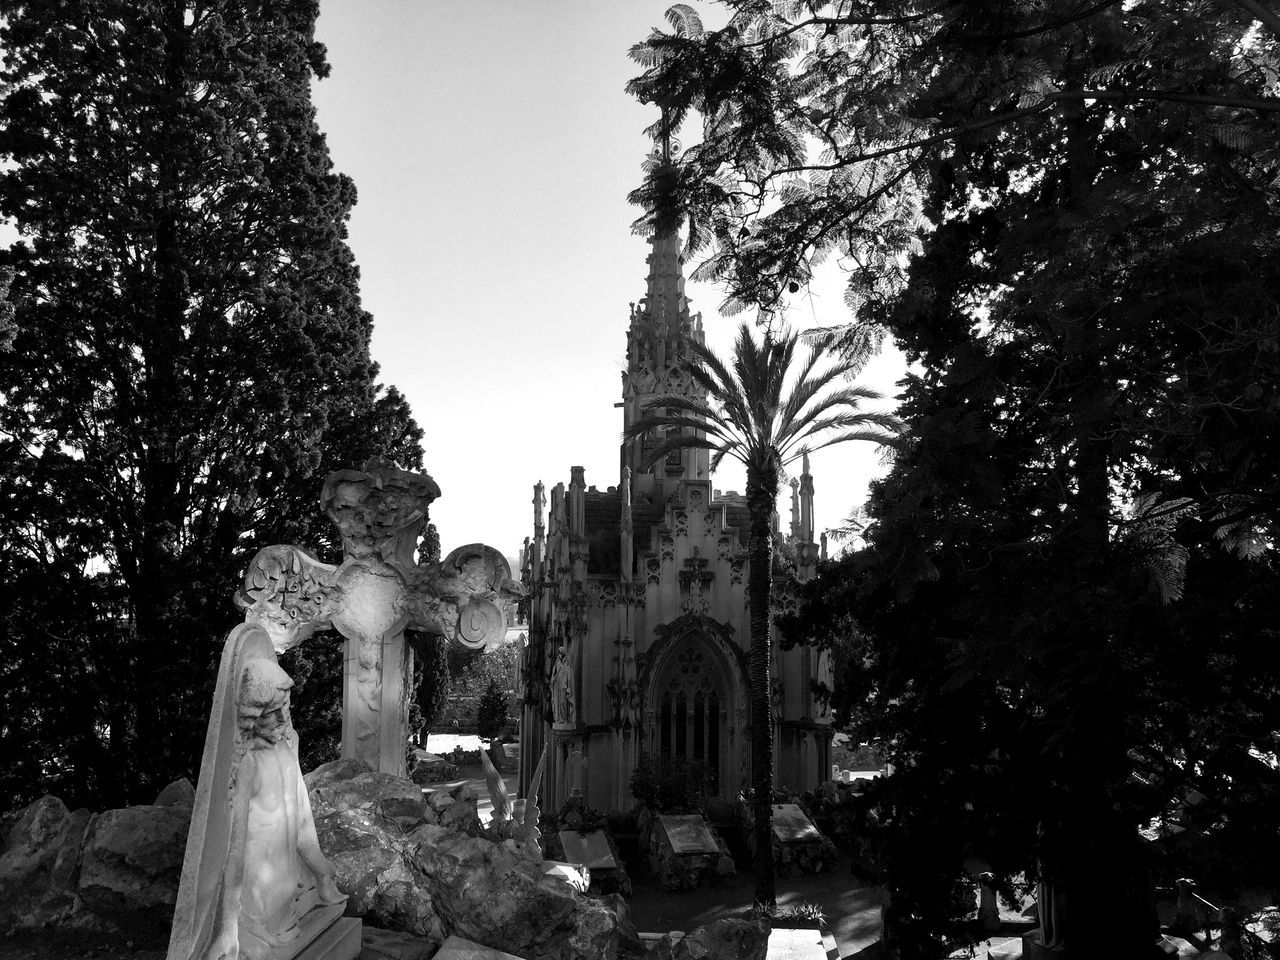 Architecture Barcelona Bcn Cementiri Cementiri De Montjuic Cemetery City Grave Graveyard Local Montjuic Nature Palm Palm Tree Park SPAIN Statue Stone Thomb